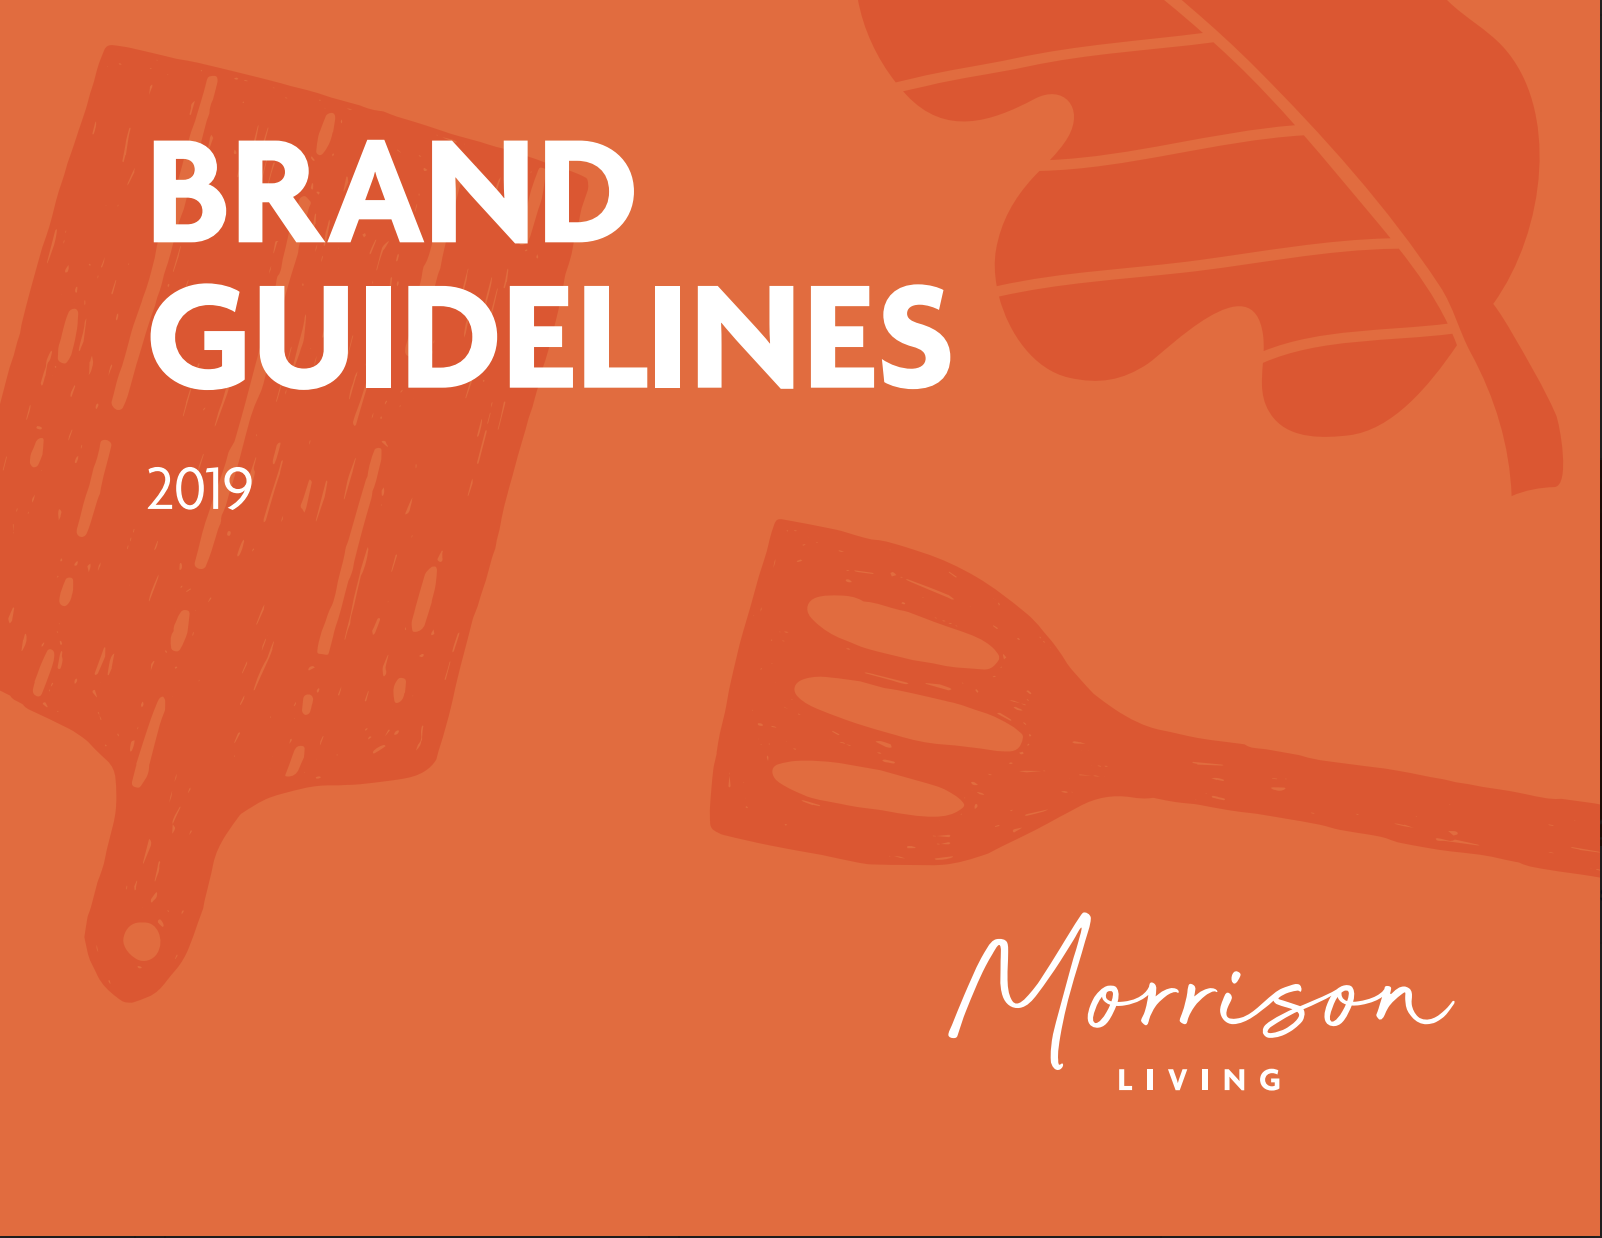 brand guidelines pdf from morriison living